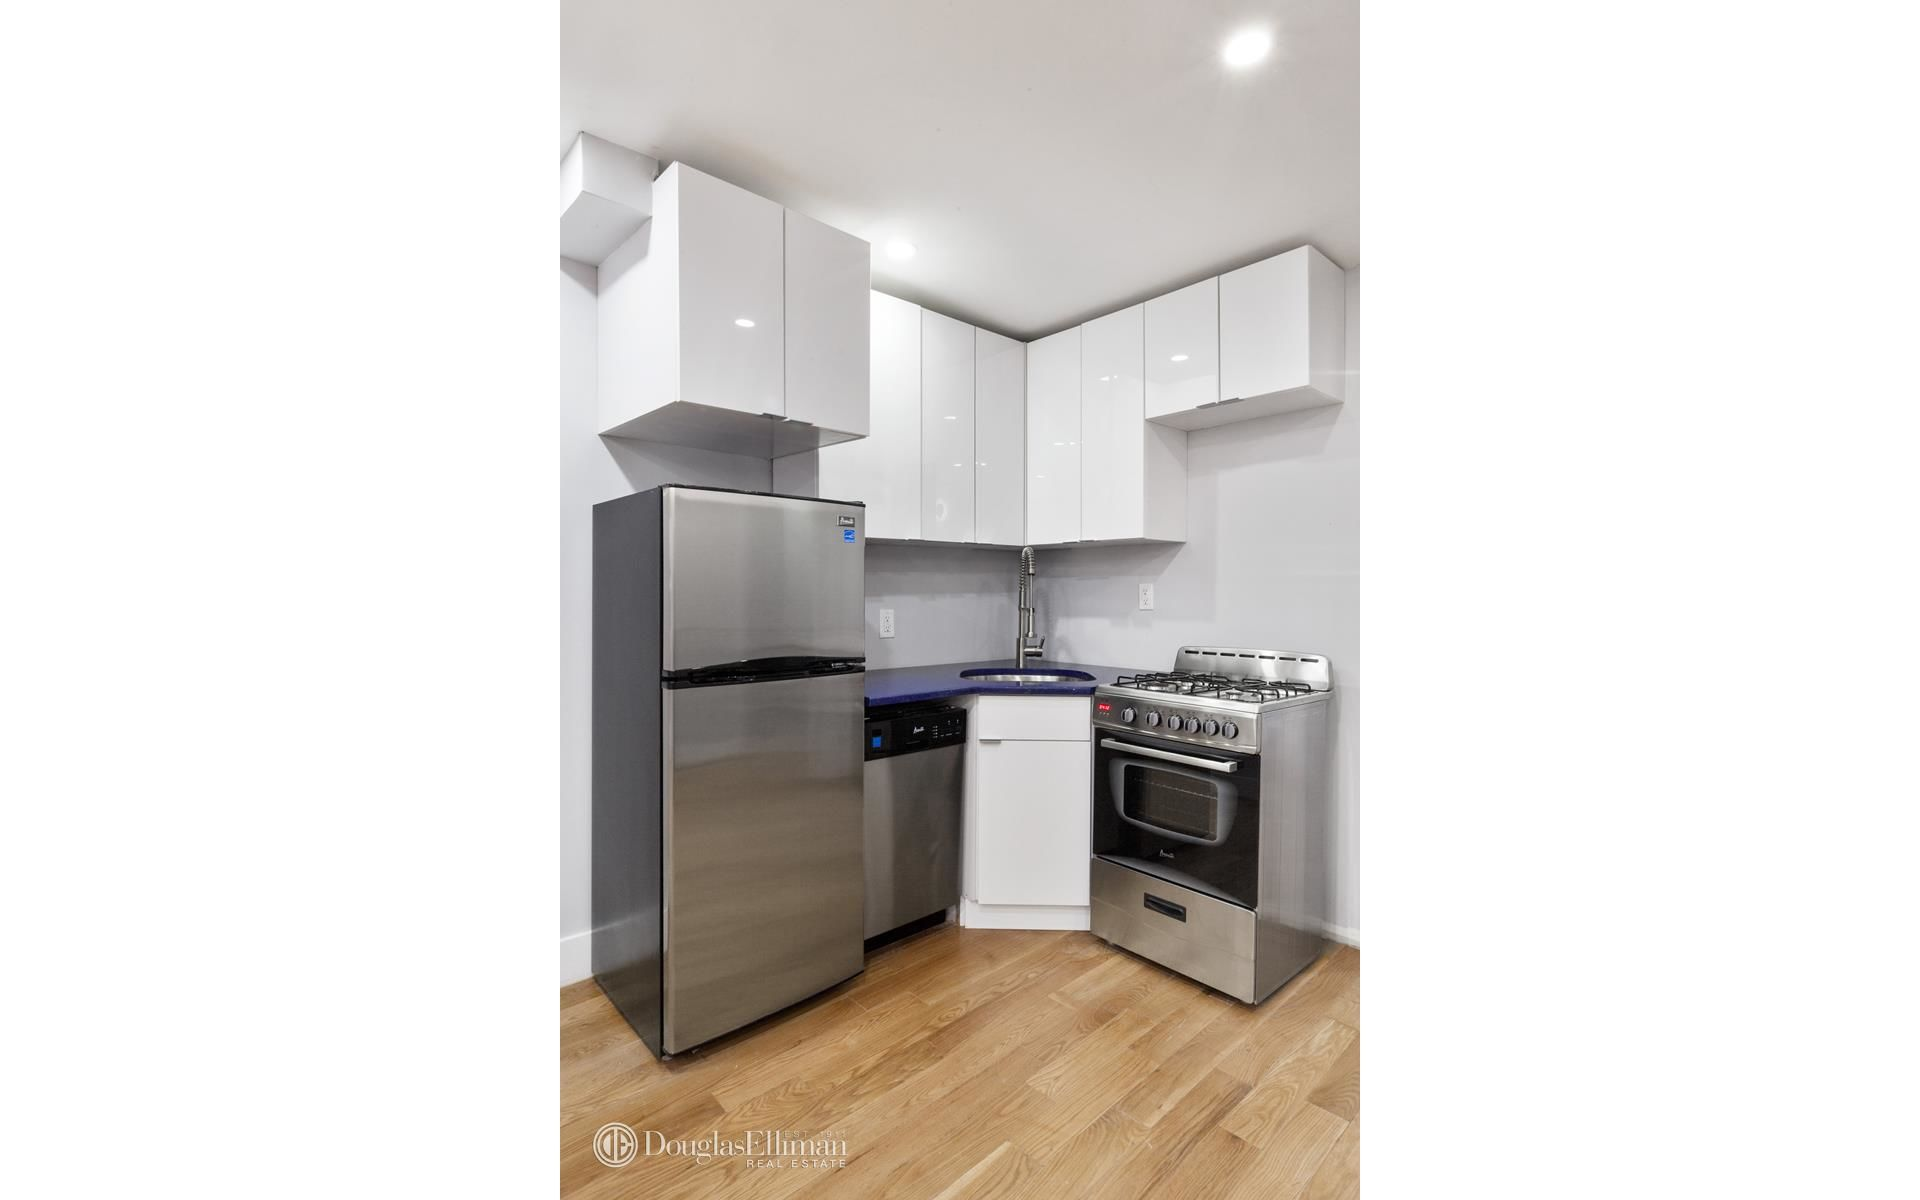 299 Vanderbilt Ave Photo 12 - ELLIMAN-2558258